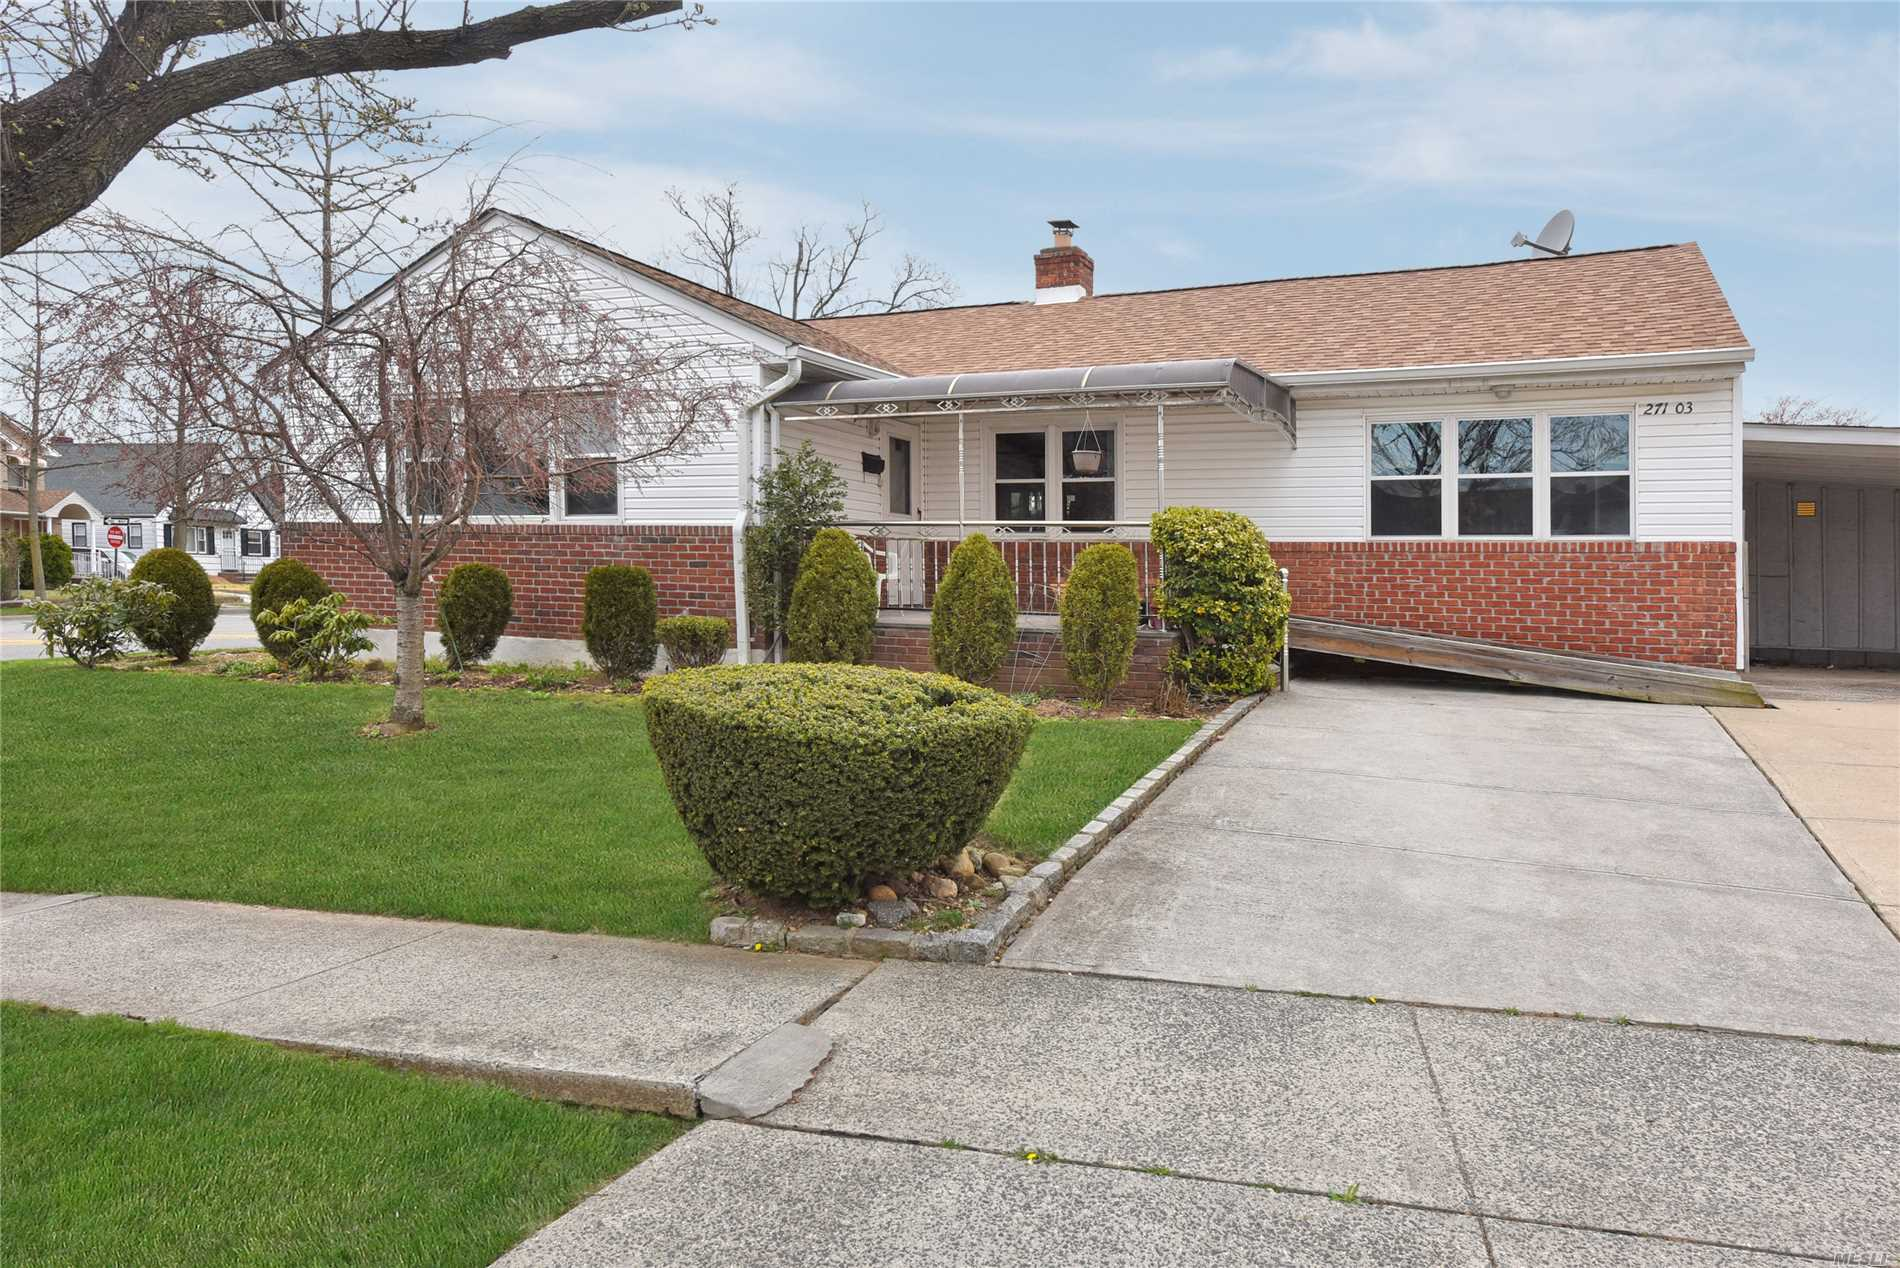 Beautiful Ranch 1 Family in New Hyde Park, with extension, LOW TAX, Central AC (1 Zone), 3 Zone Heating , 3 Bedrooms, 2 Full Bathrooms, Updated KIT , Spacious LR, Formal DR , Covered Porch, Finished Basement ( Family Room / Office), Boiler and Laundry Room, 1 Car Port,  Wheelchair accessible ramp at the main entrance. Near to Public Transportation, Easy Access To Highways, Close By to Big Shopping Areas and LIJ Hospital.All Information Deemed Accurate However Should Be Independently Verified.